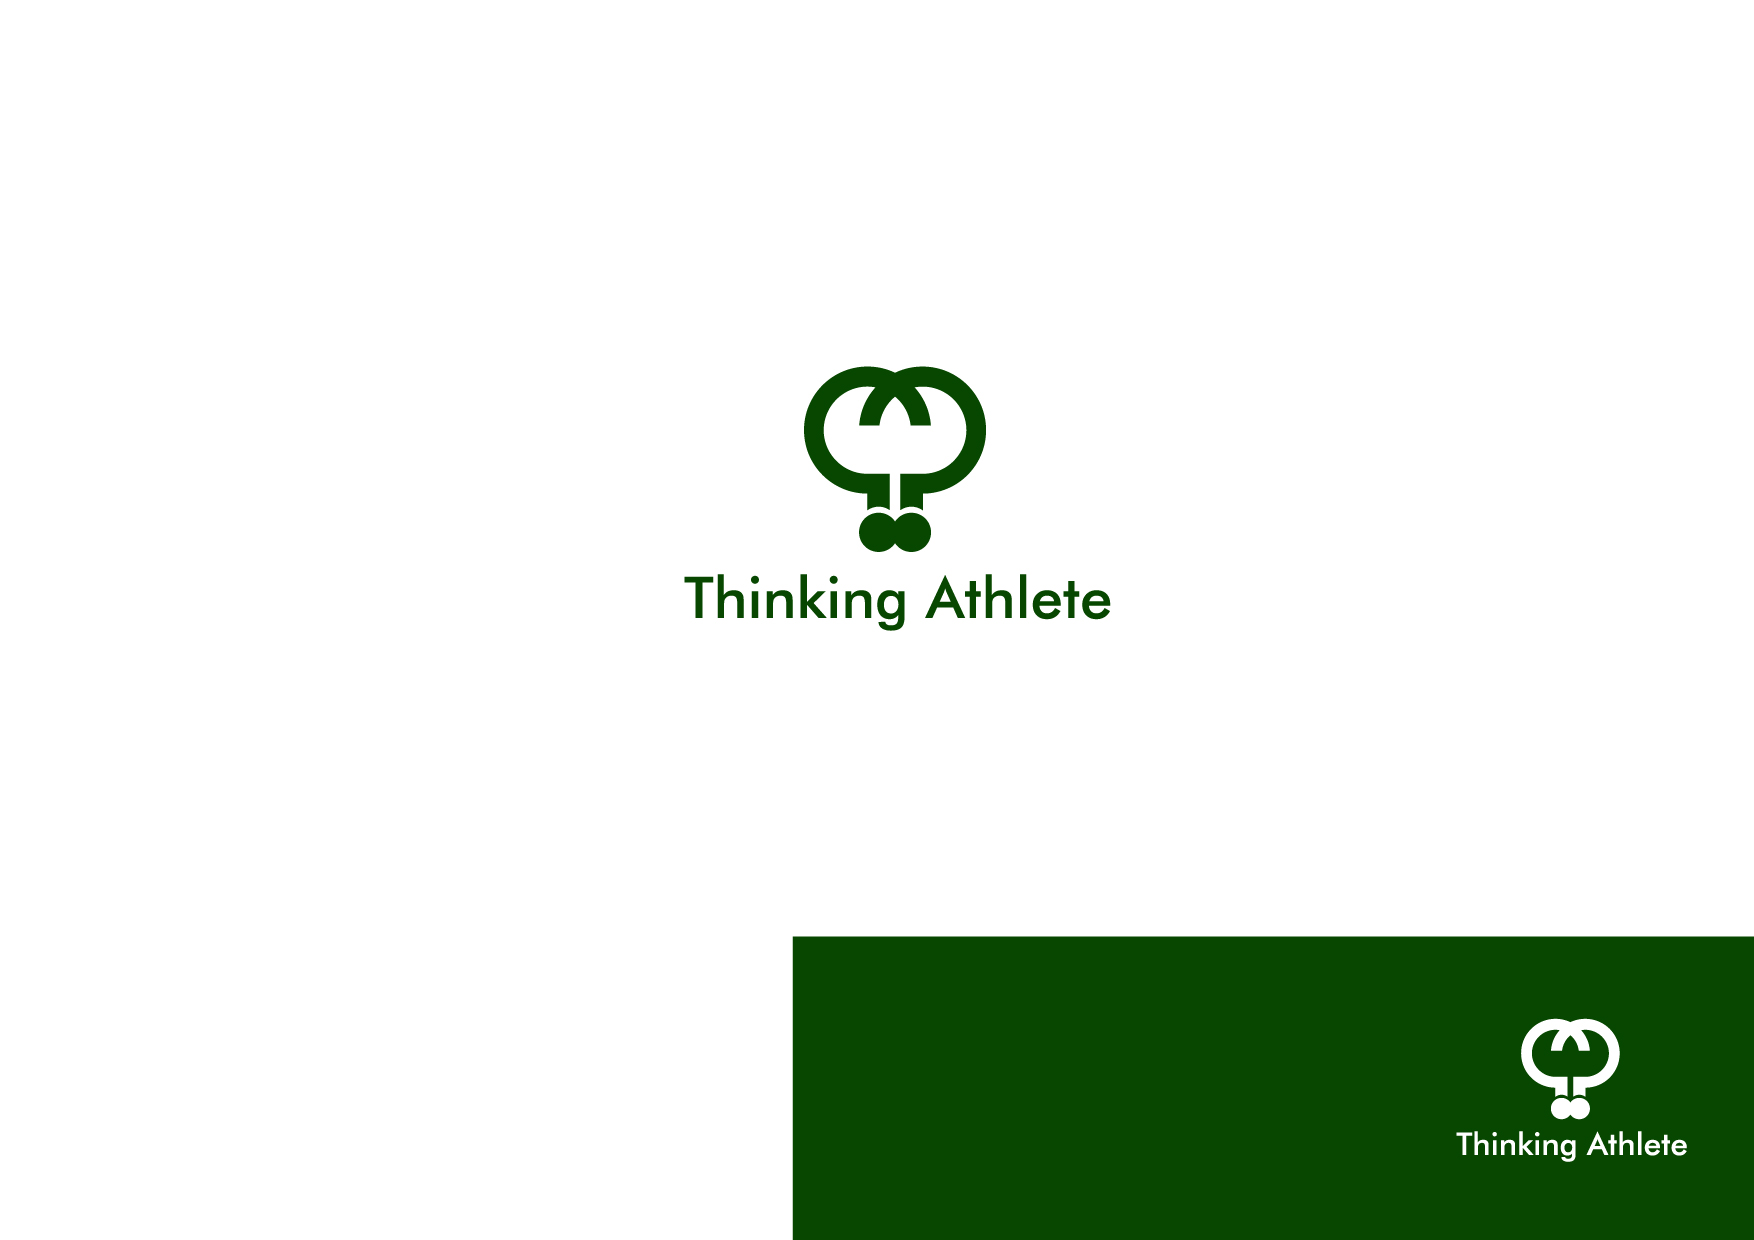 Logo Design by Osi Indra - Entry No. 37 in the Logo Design Contest Thinking Athlete Logo Design.